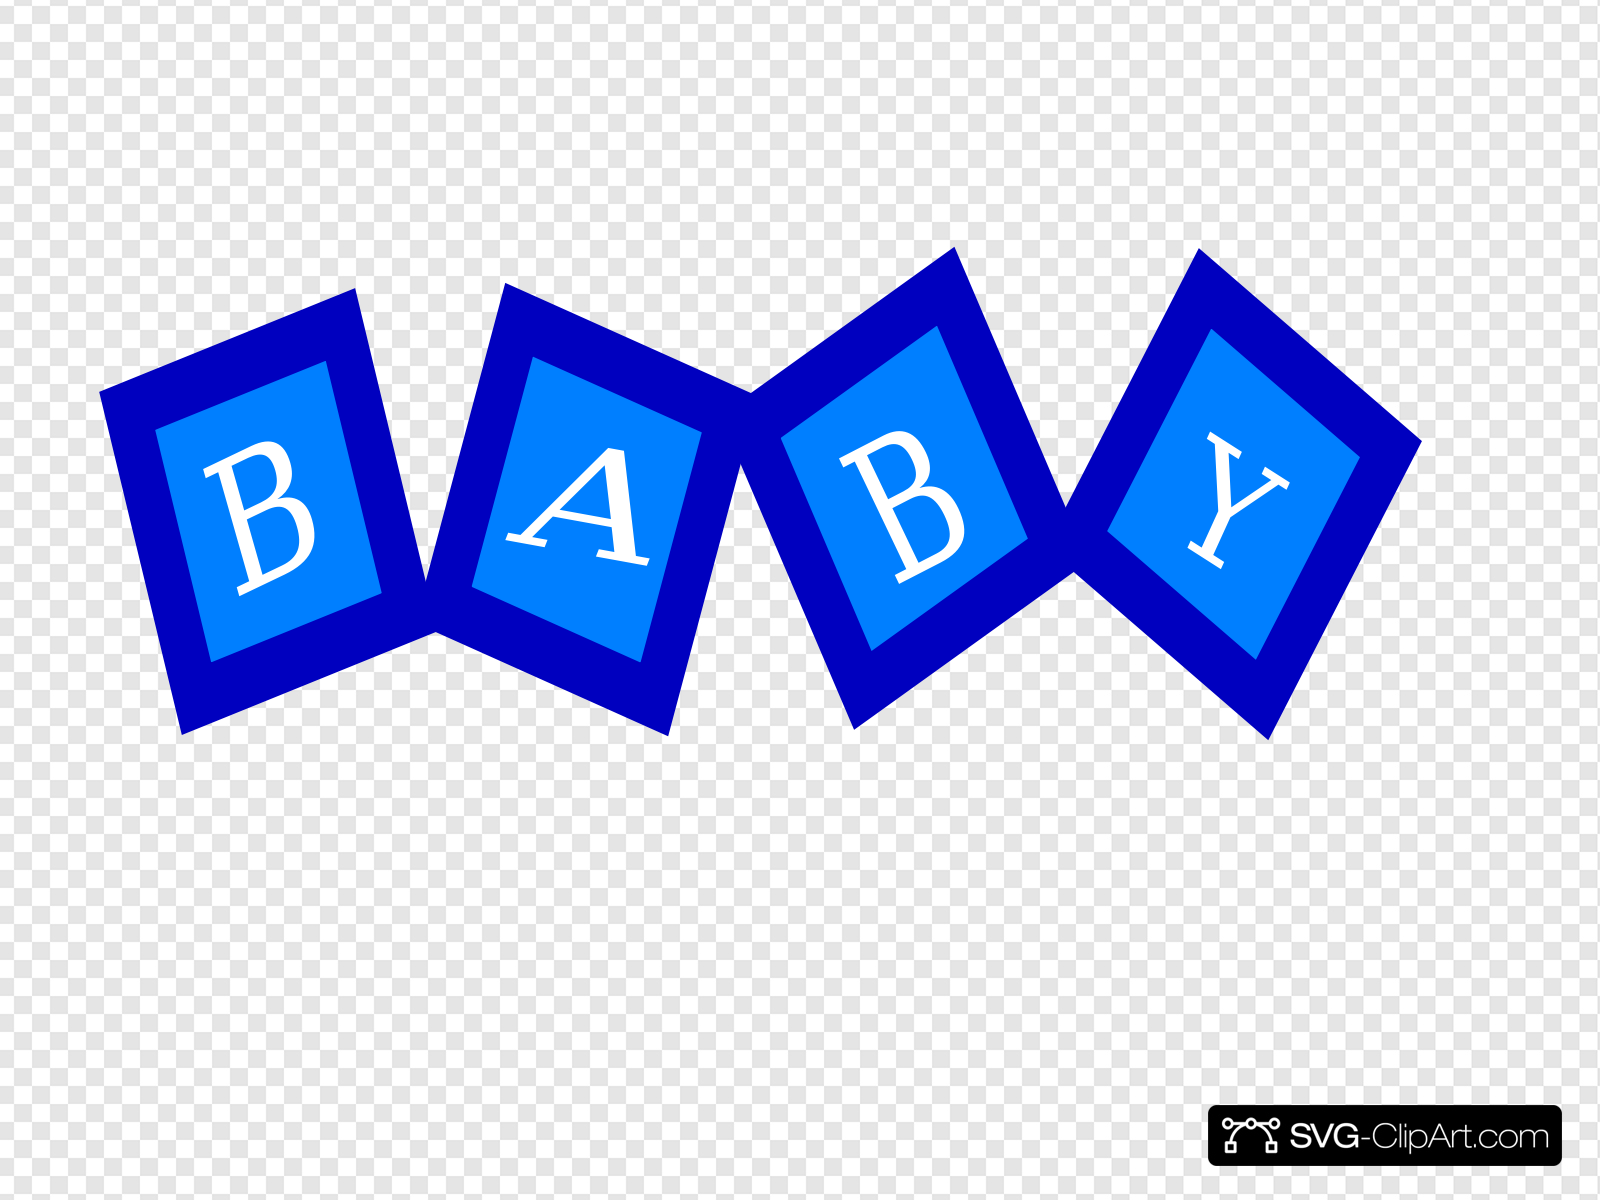 Baby Blocks Clip art, Icon and SVG.